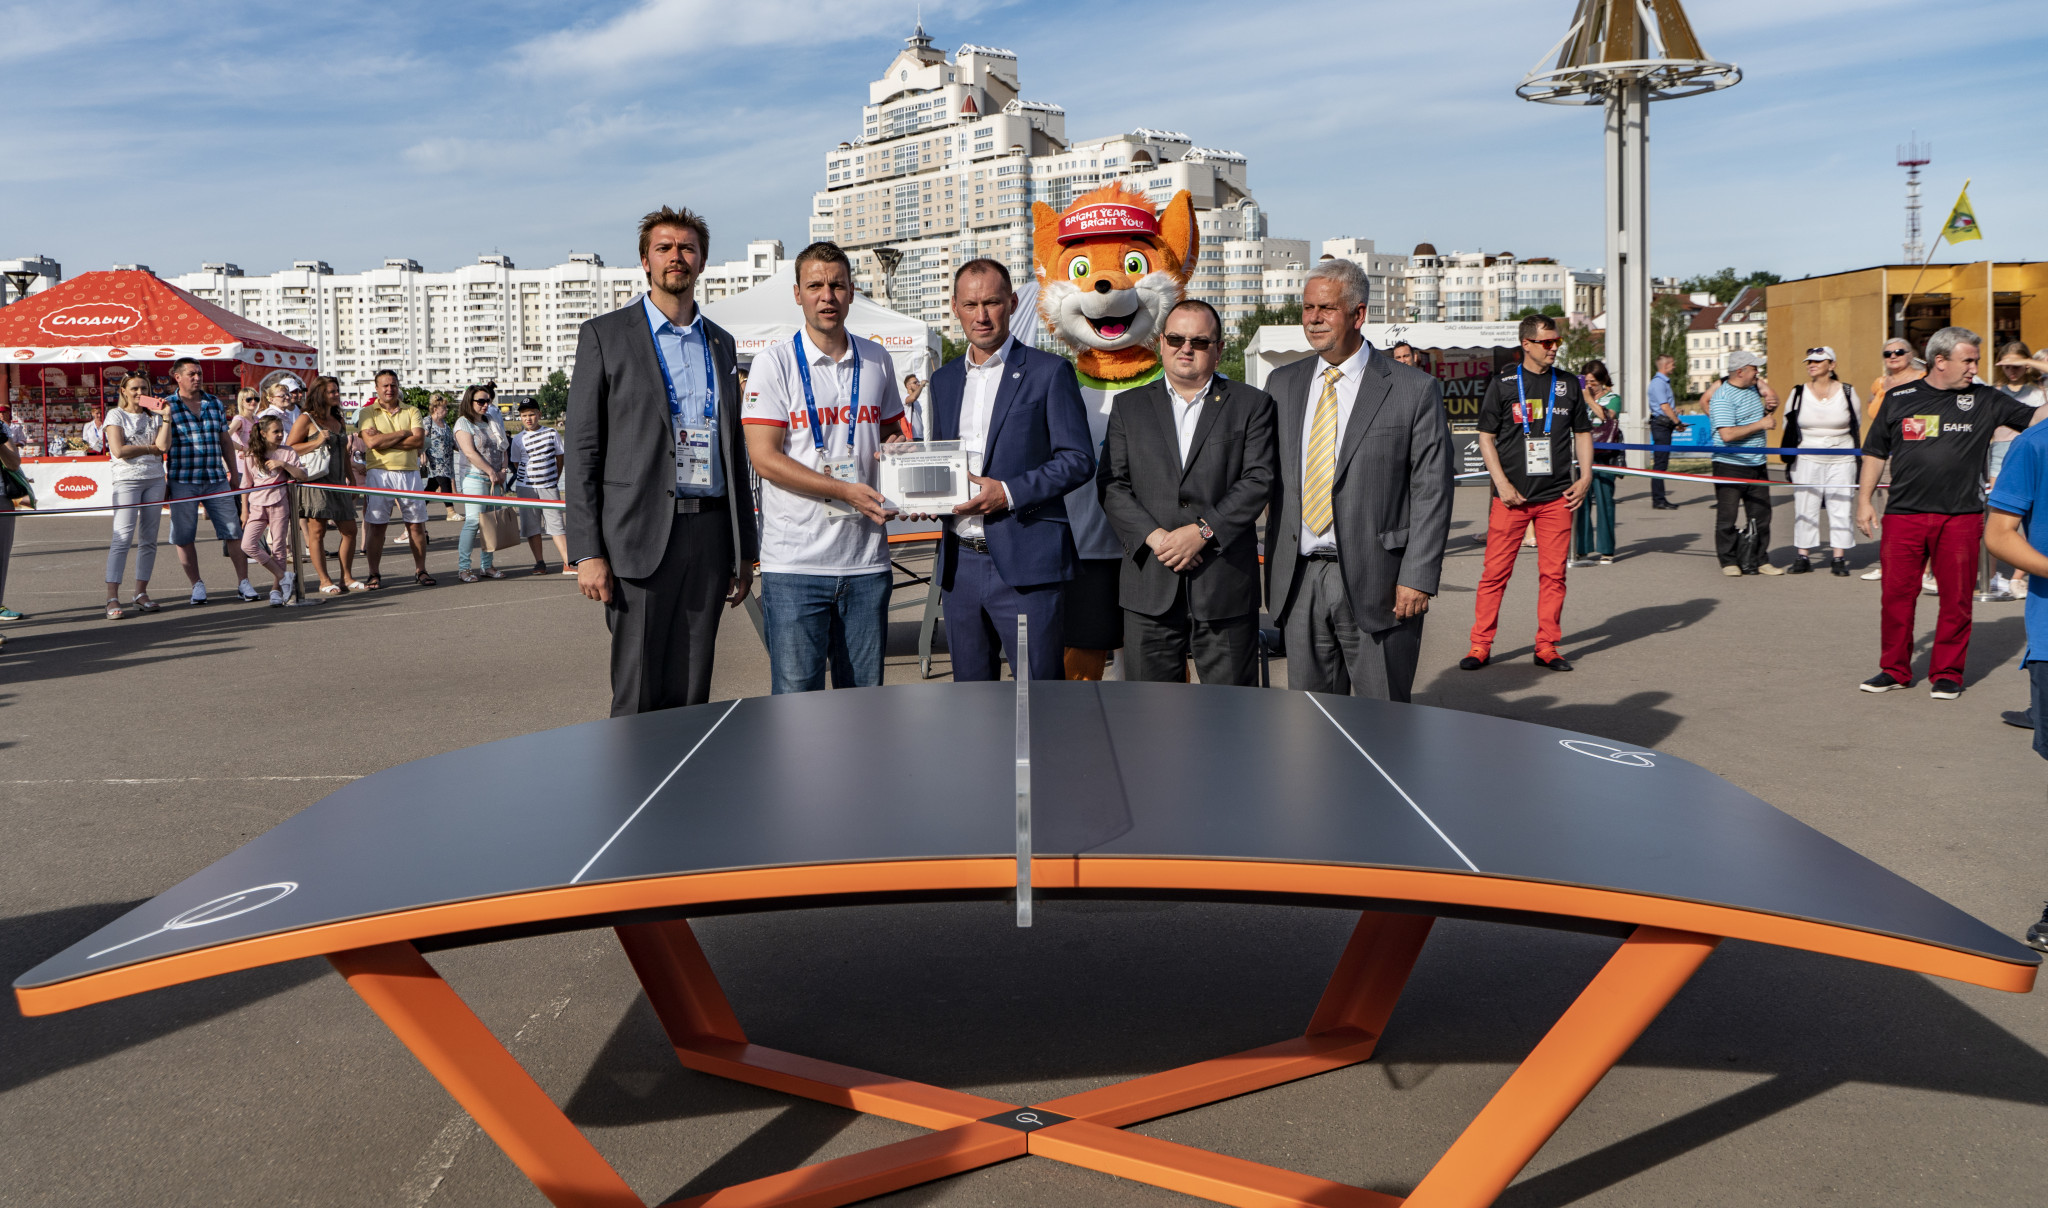 Teqball exhibited at Minsk 2019 fan zone as part of celebration of Hungarian culture